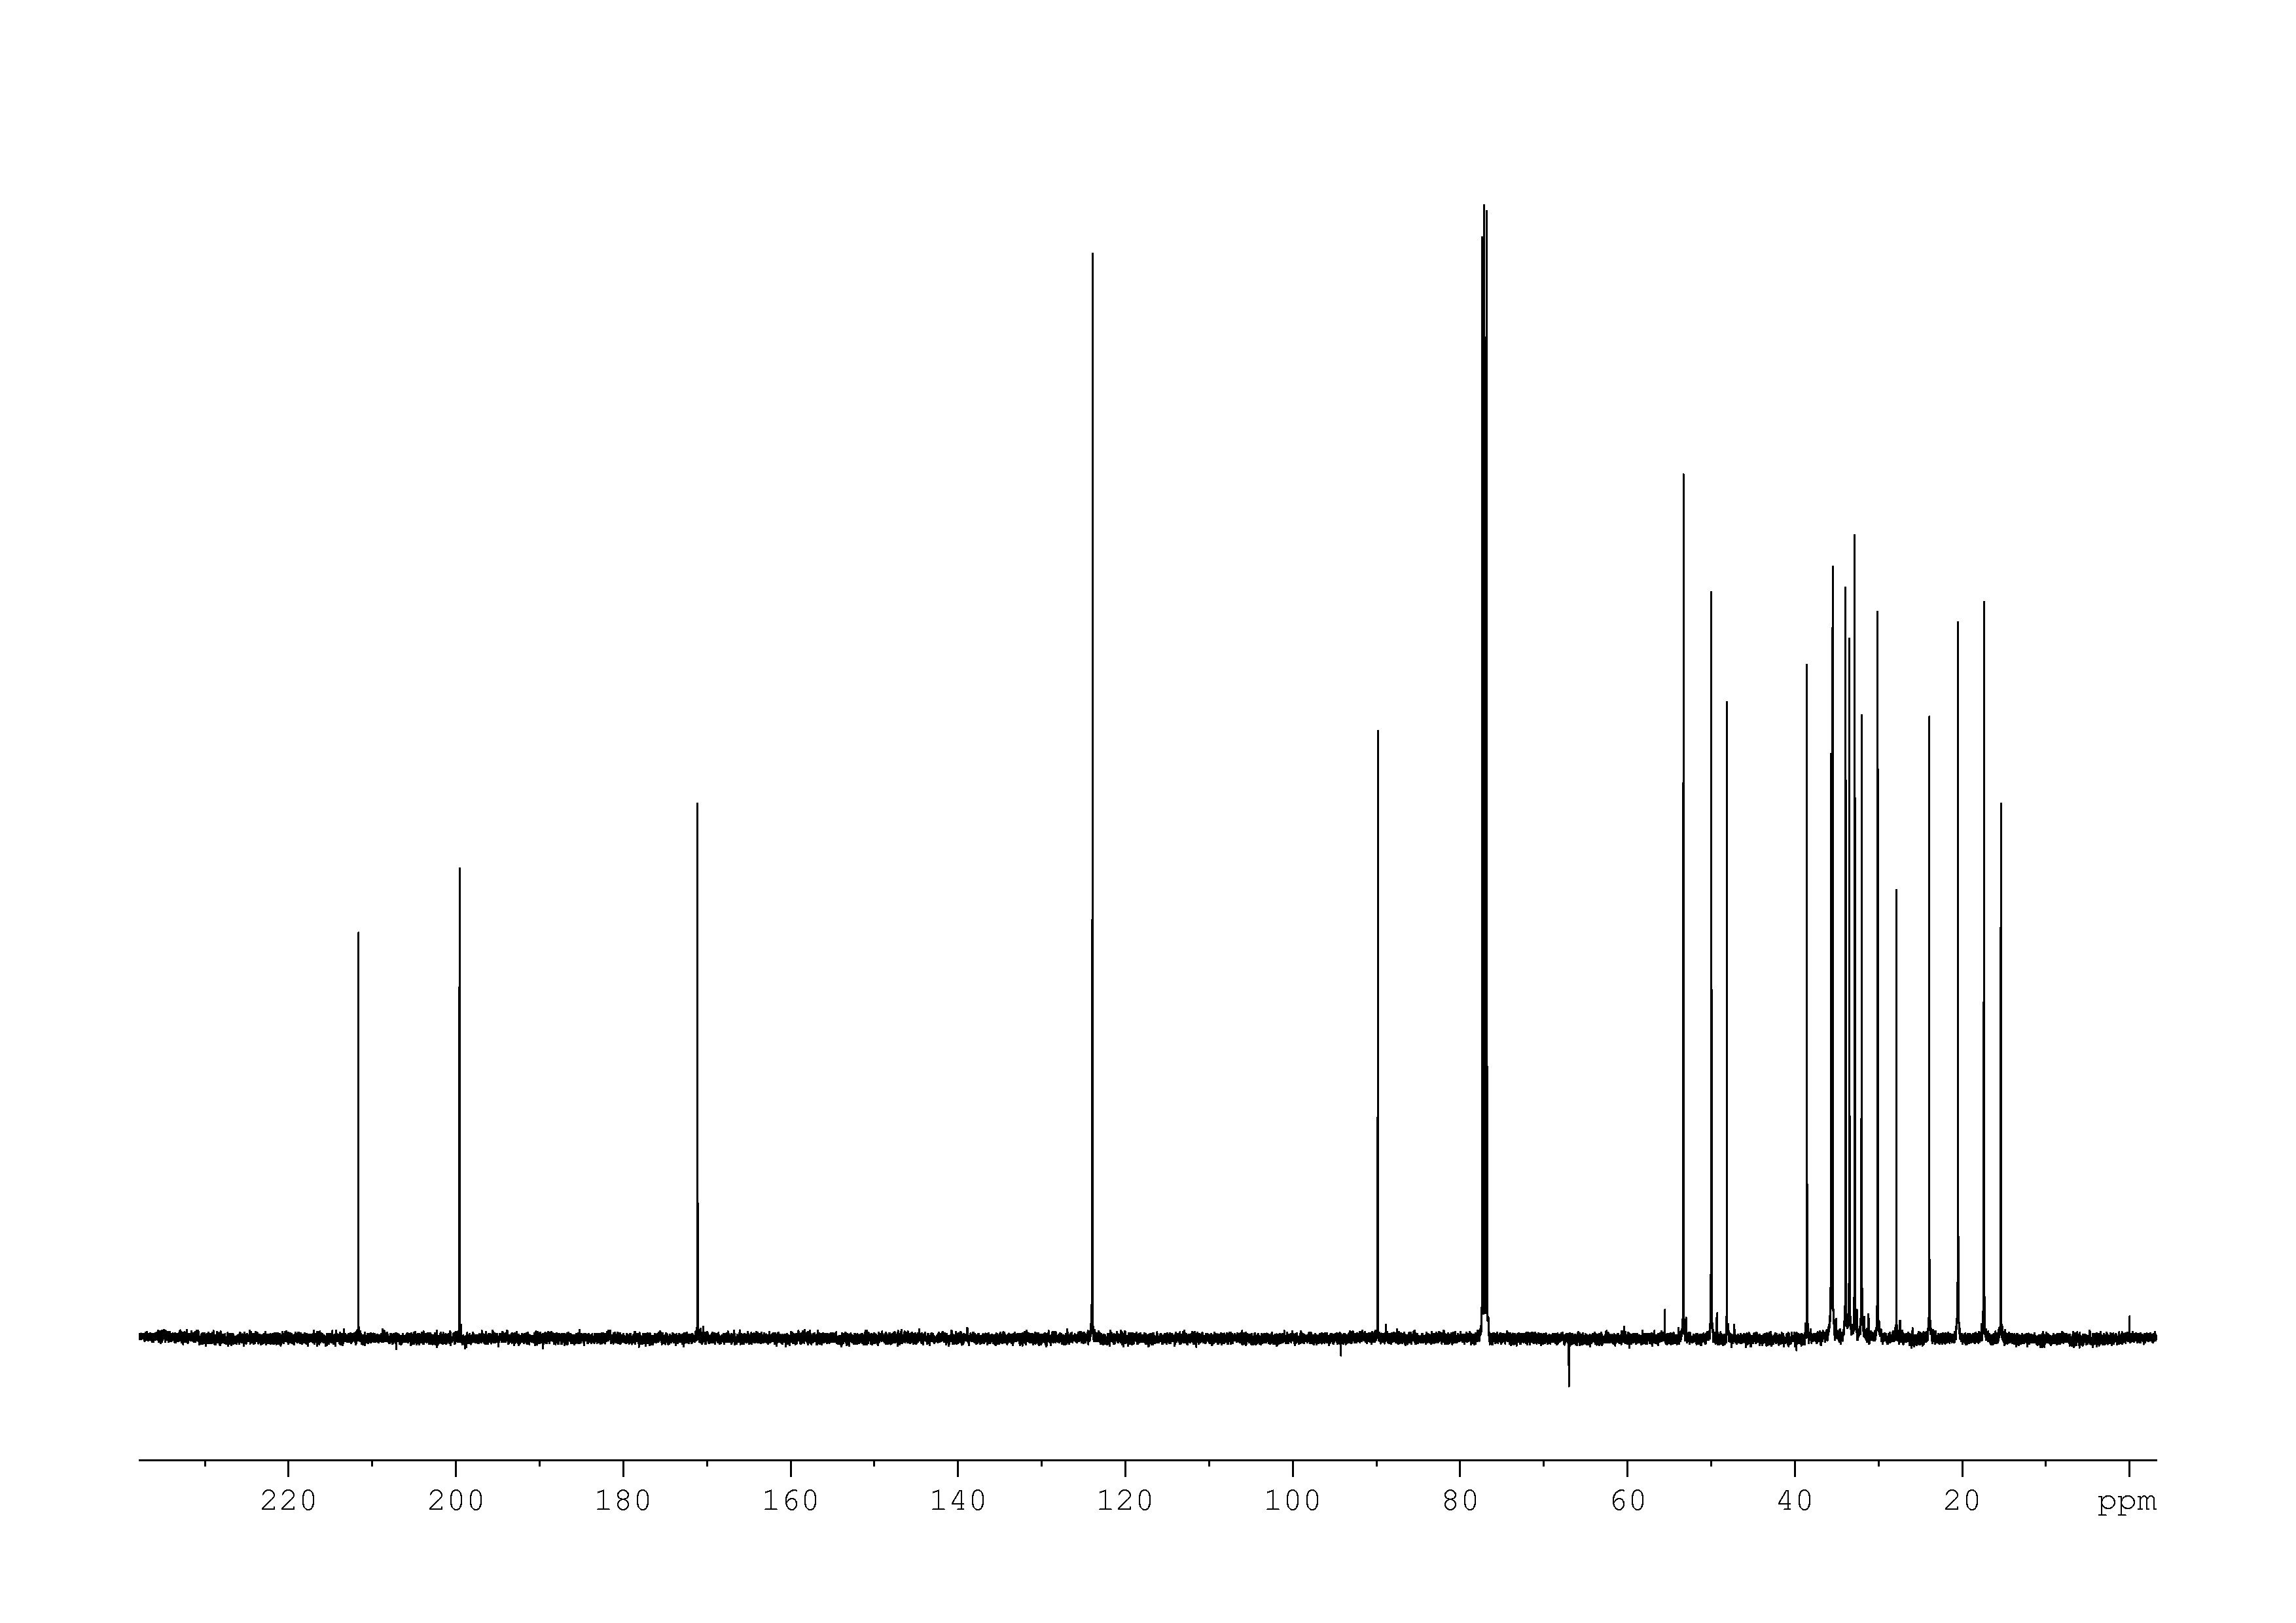 1D 13C, n/a spectrum for 17-alpha-hydroxyprogesterone